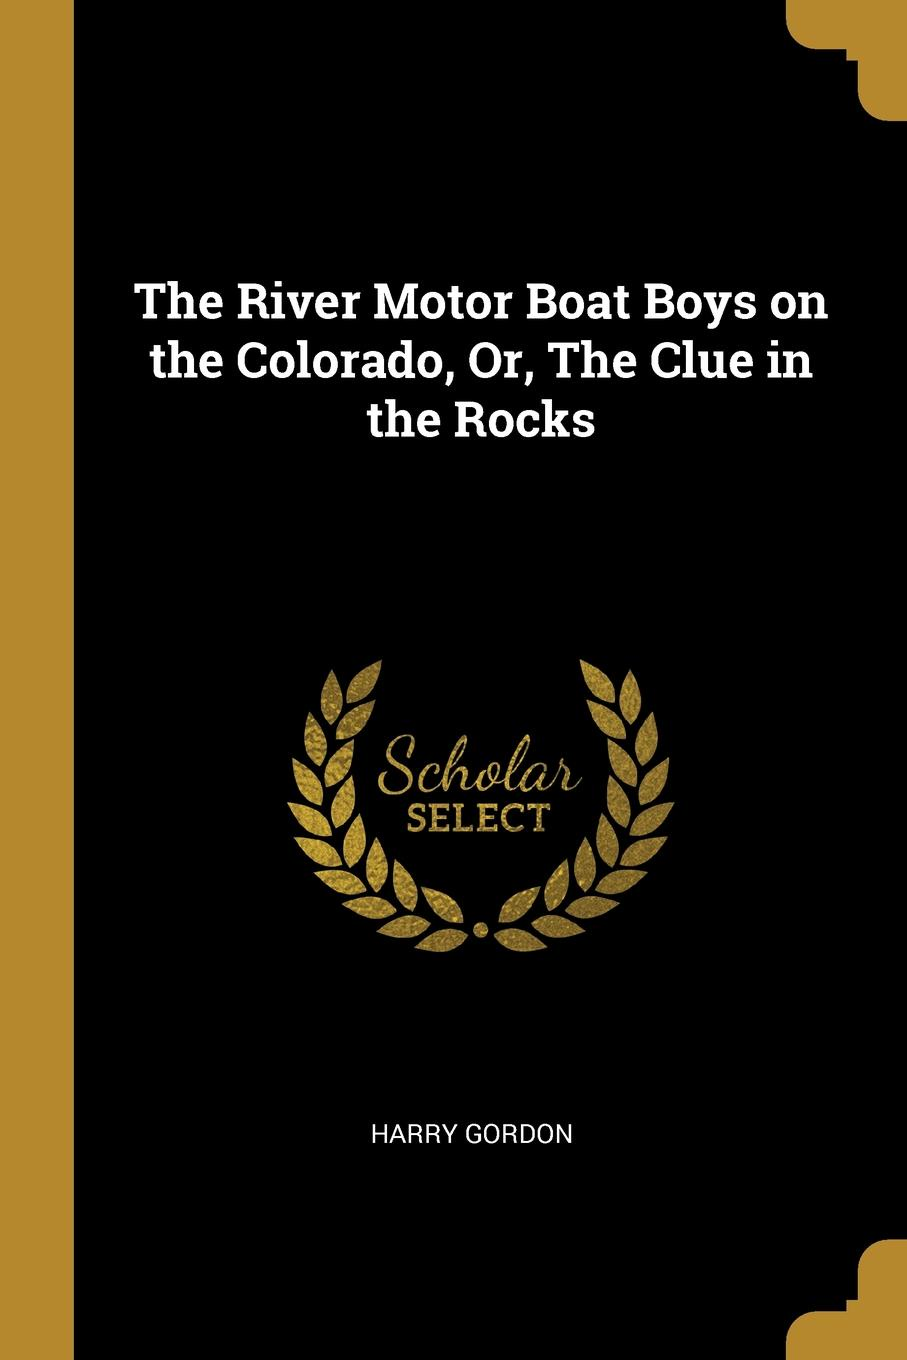 Harry Gordon The River Motor Boat Boys on the Colorado, Or, The Clue in the Rocks